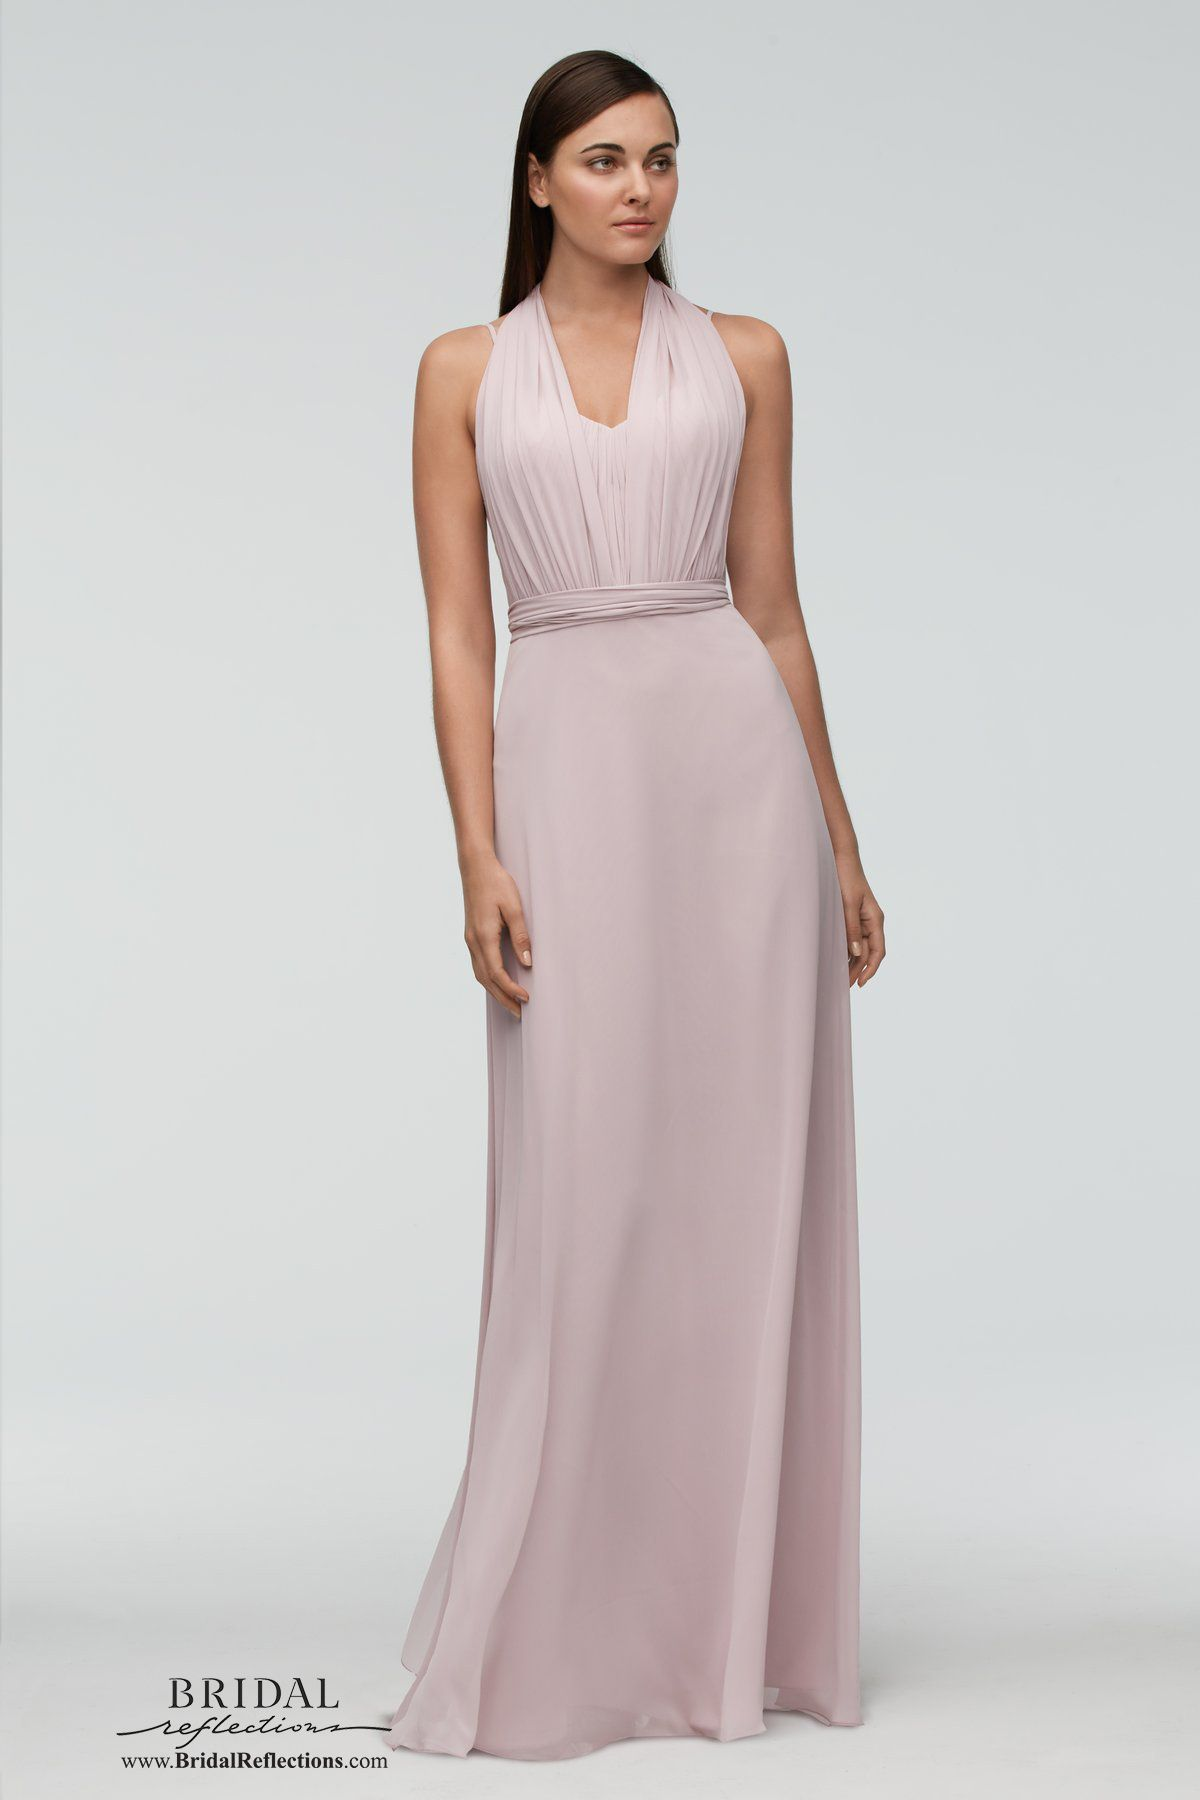 Watters Bridesmaids Bridesmaids Dresses | Bridal Reflections ...